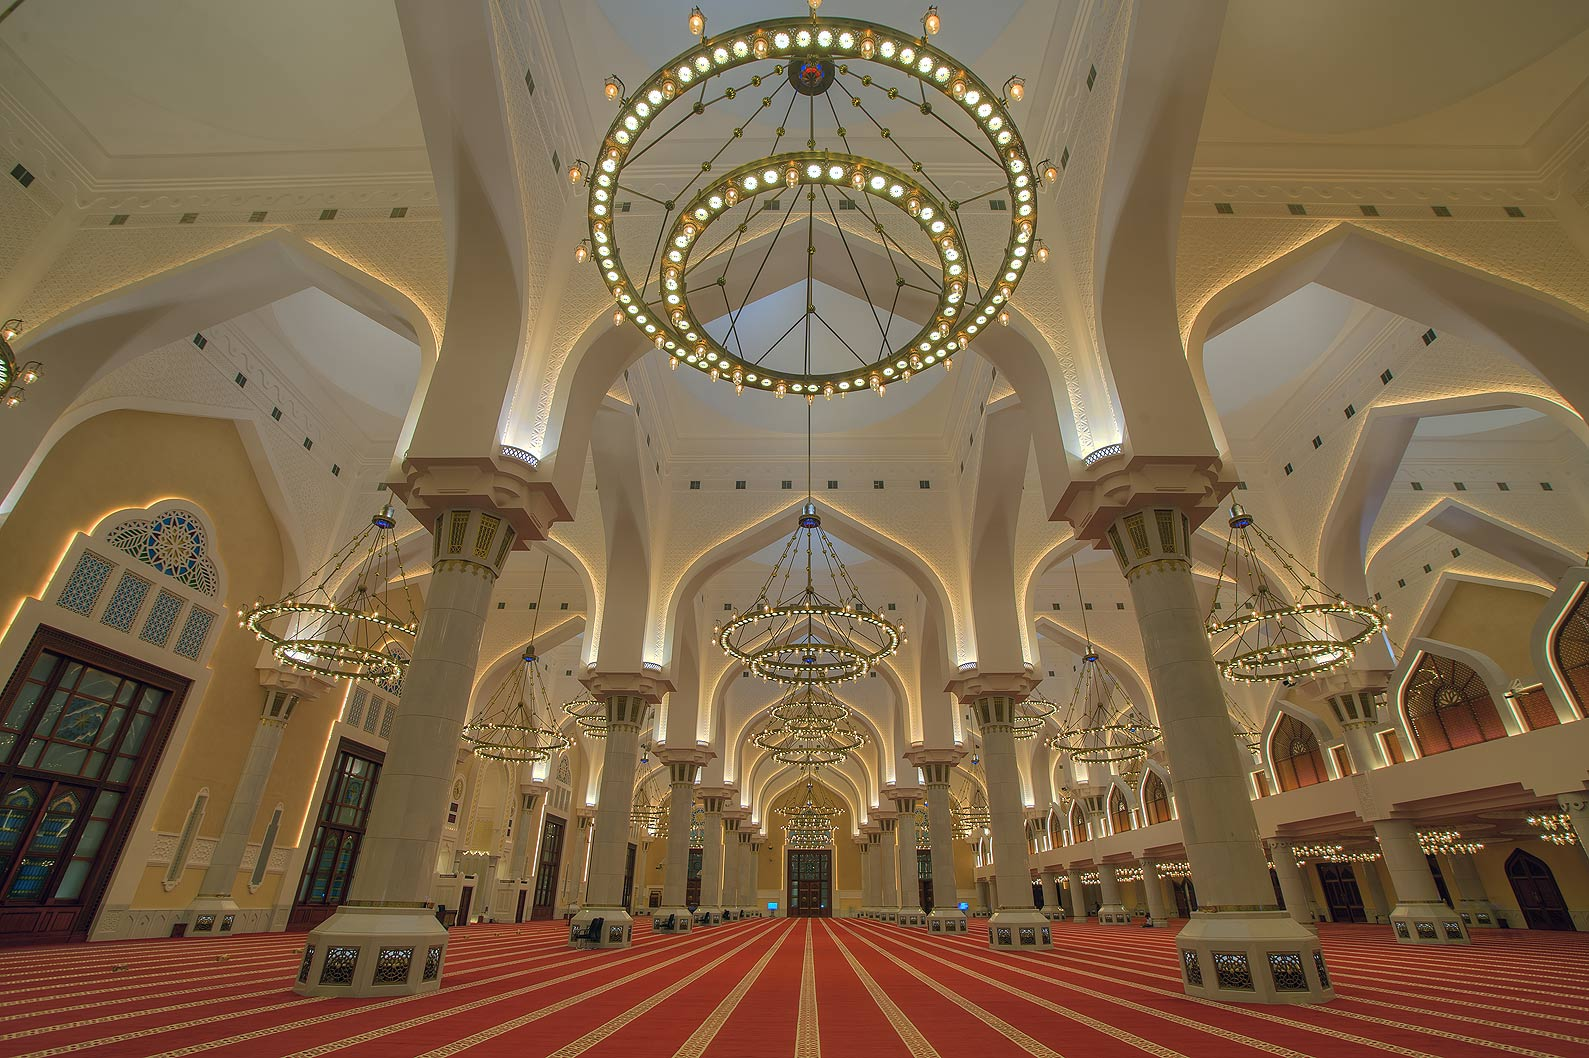 Arches and chandelier of State Mosque (Sheikh...Ibn Abdul Wahhab Mosque). Doha, Qatar